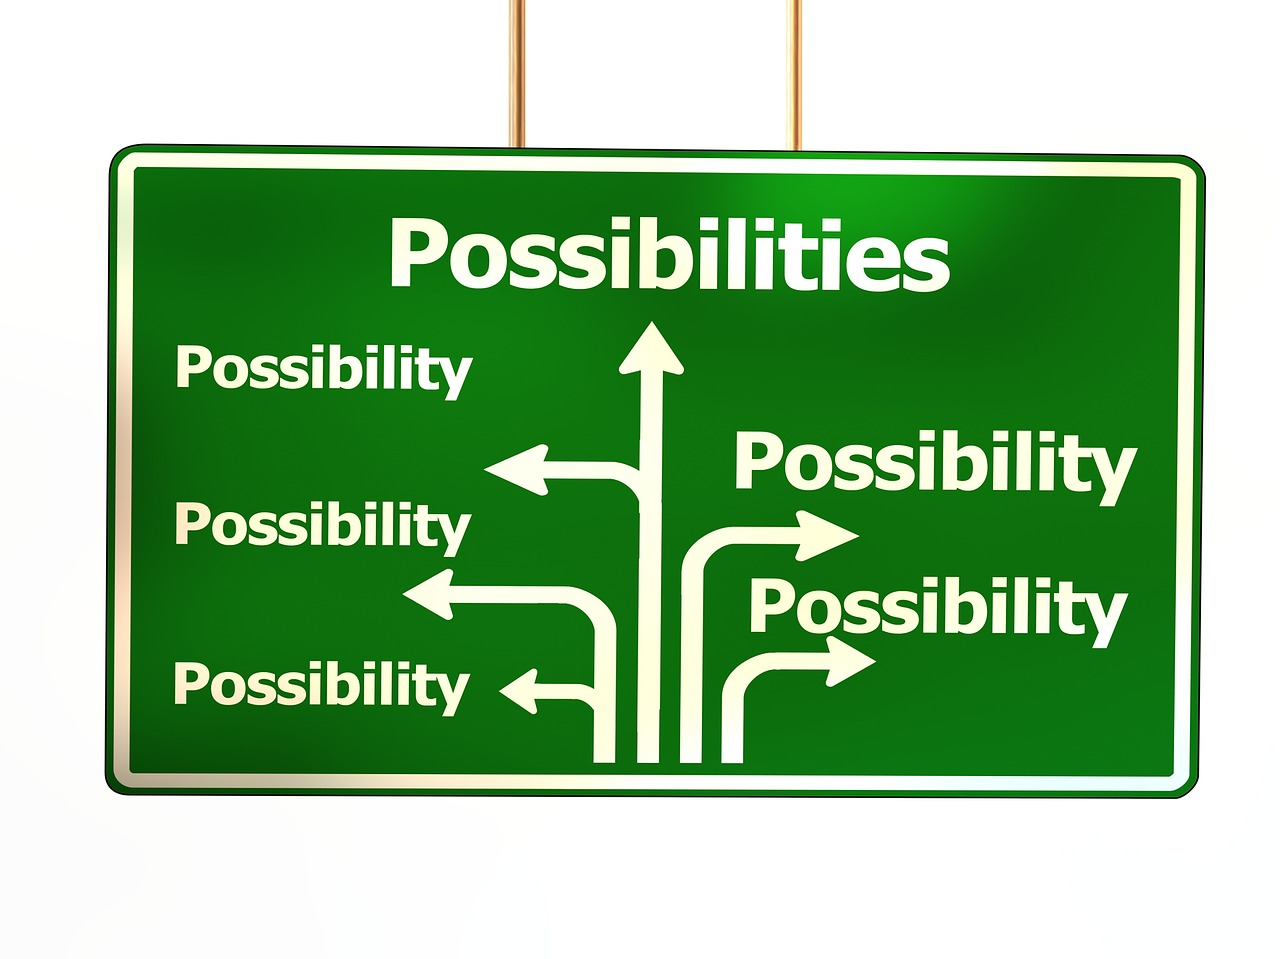 A sign saying 'possibilities' on numerous arrows